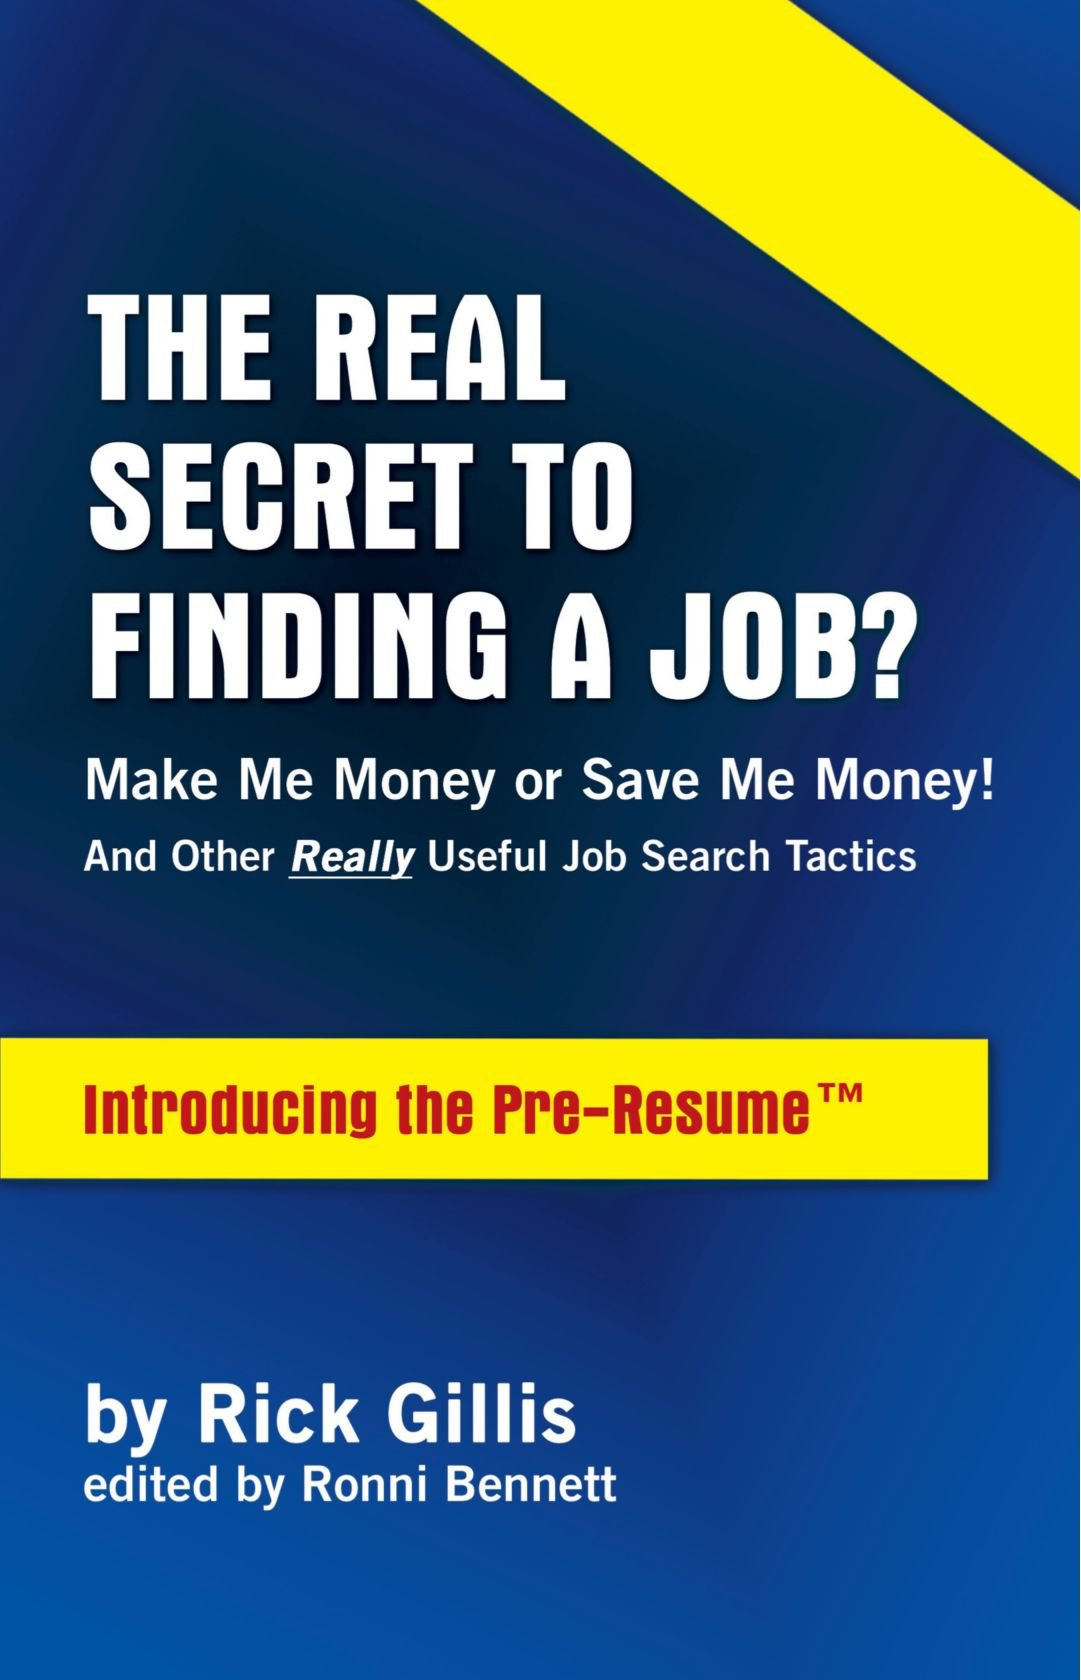 THE REAL SECRET TO FINDING A JOB MAKE ME MONEY OR SAVE